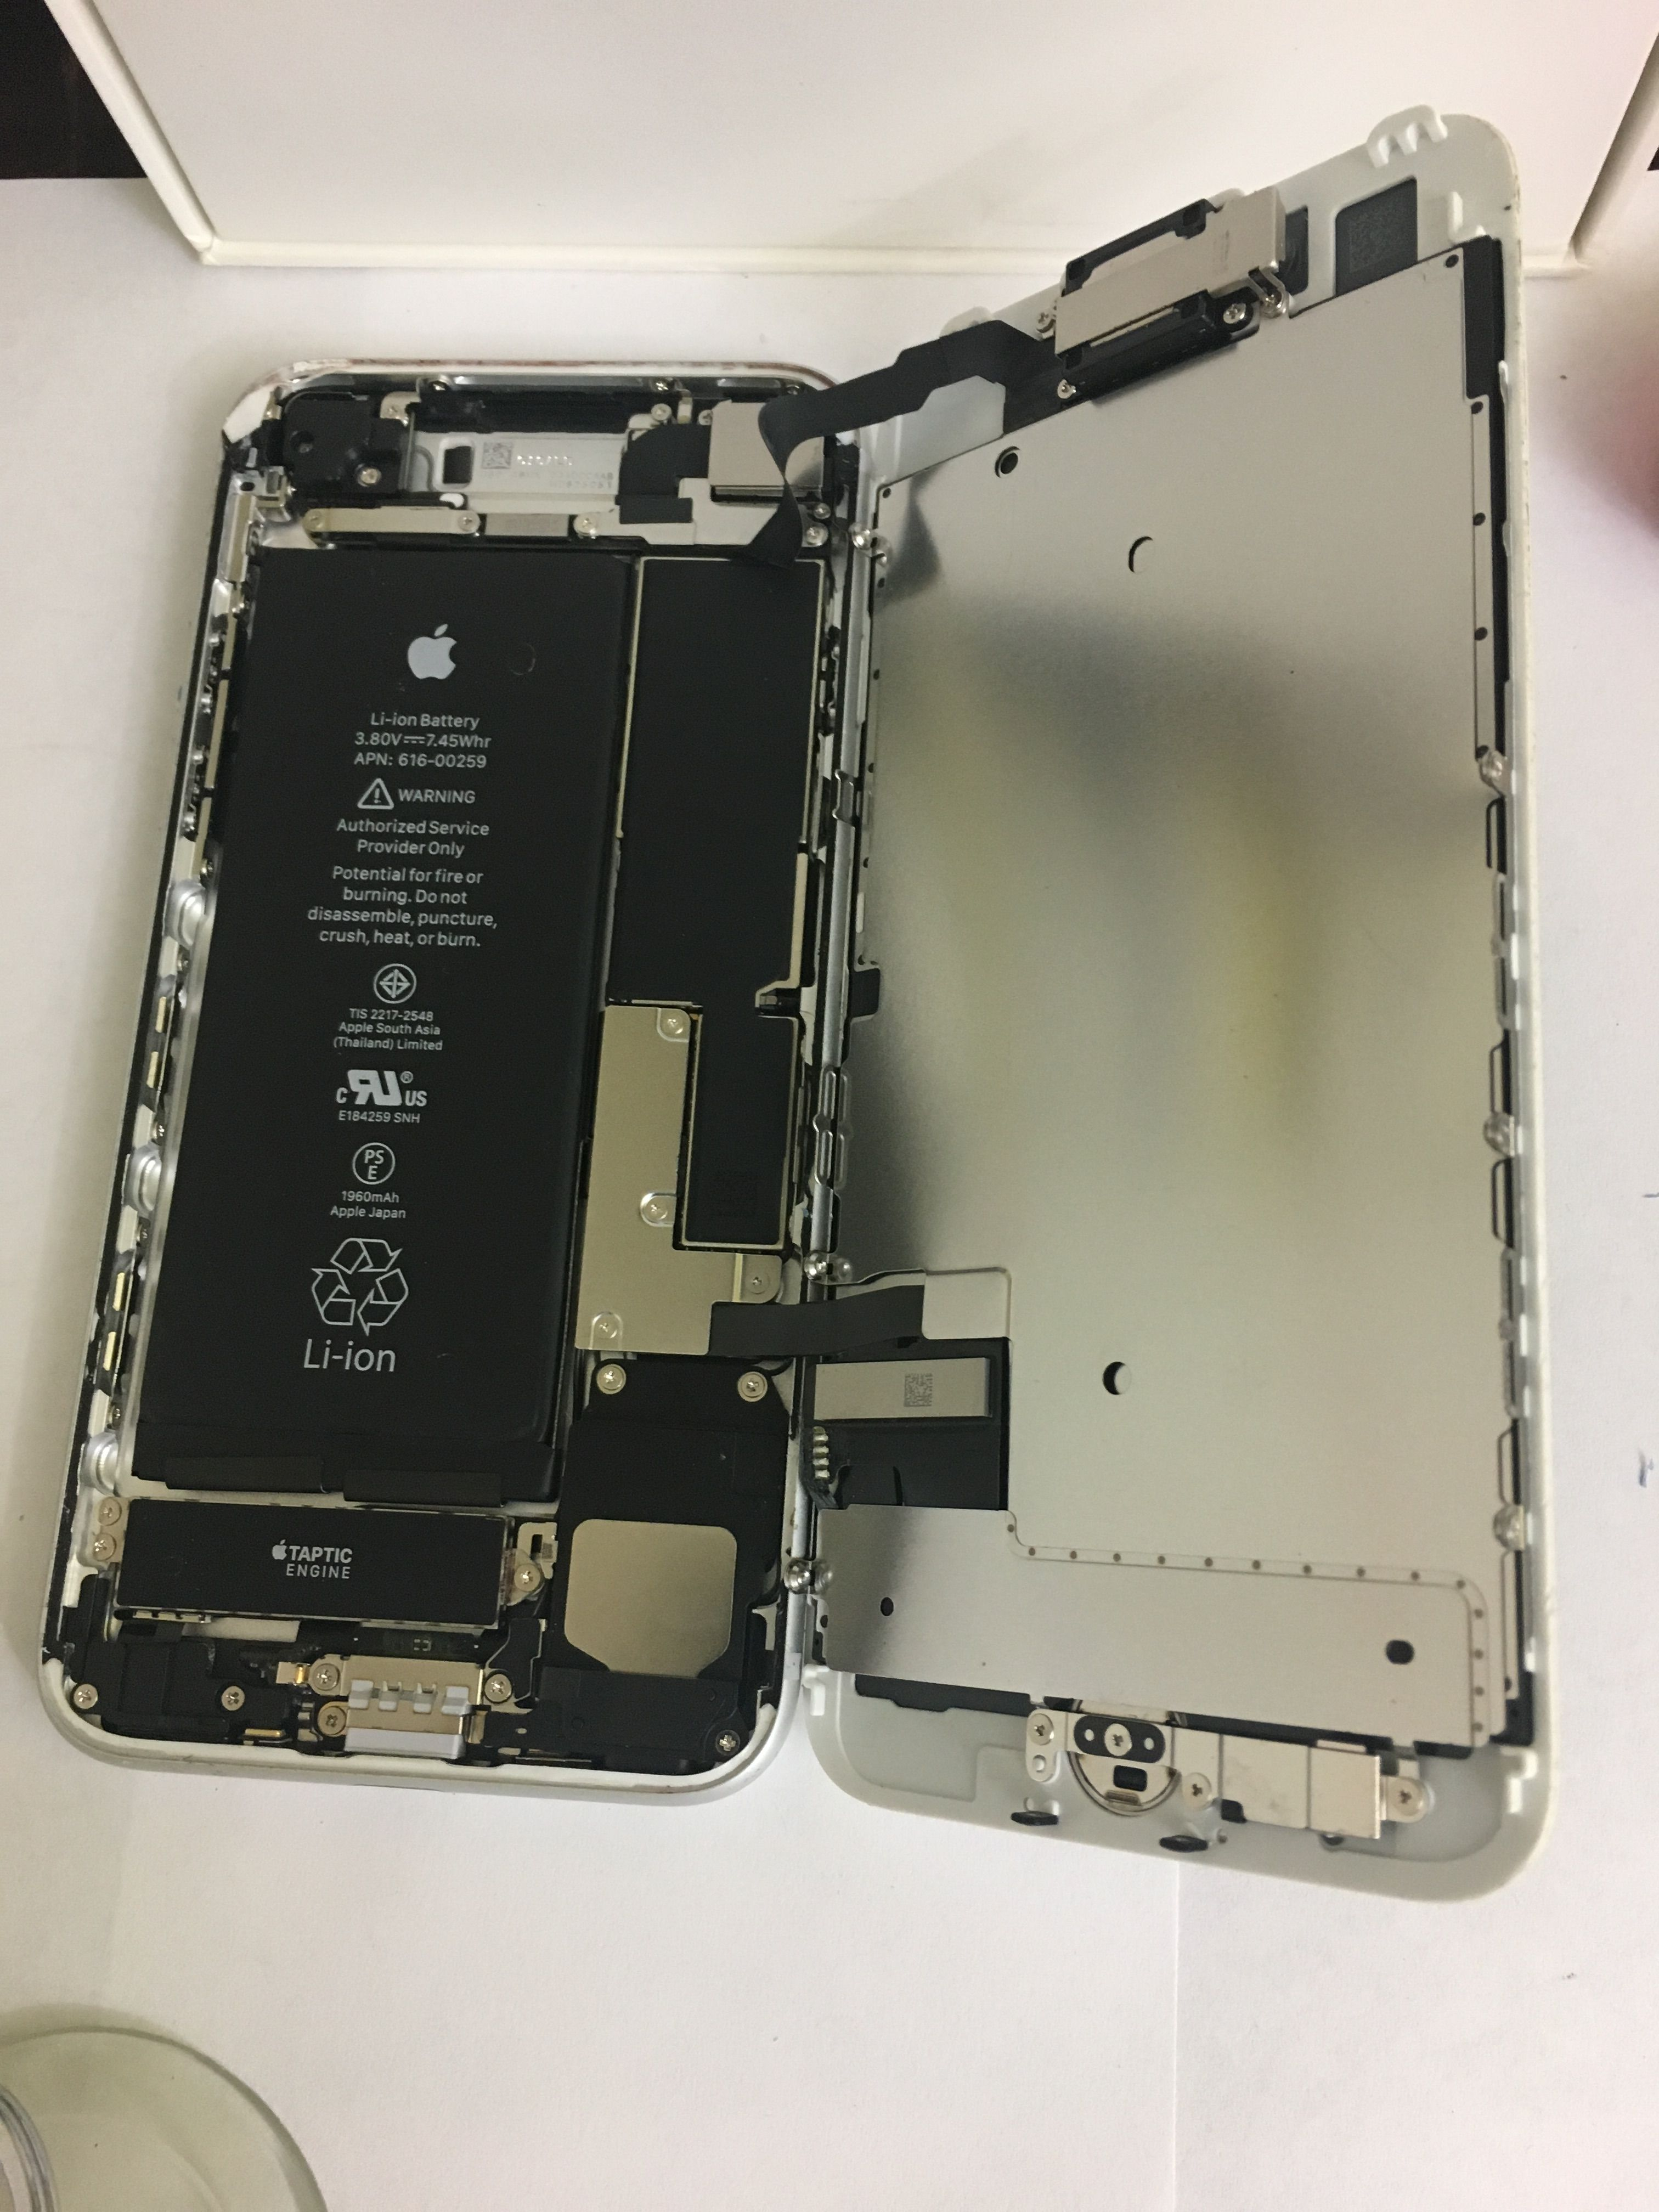 Iphone Iphonerepair Opening The Iphone 7 For A Screen Replacement